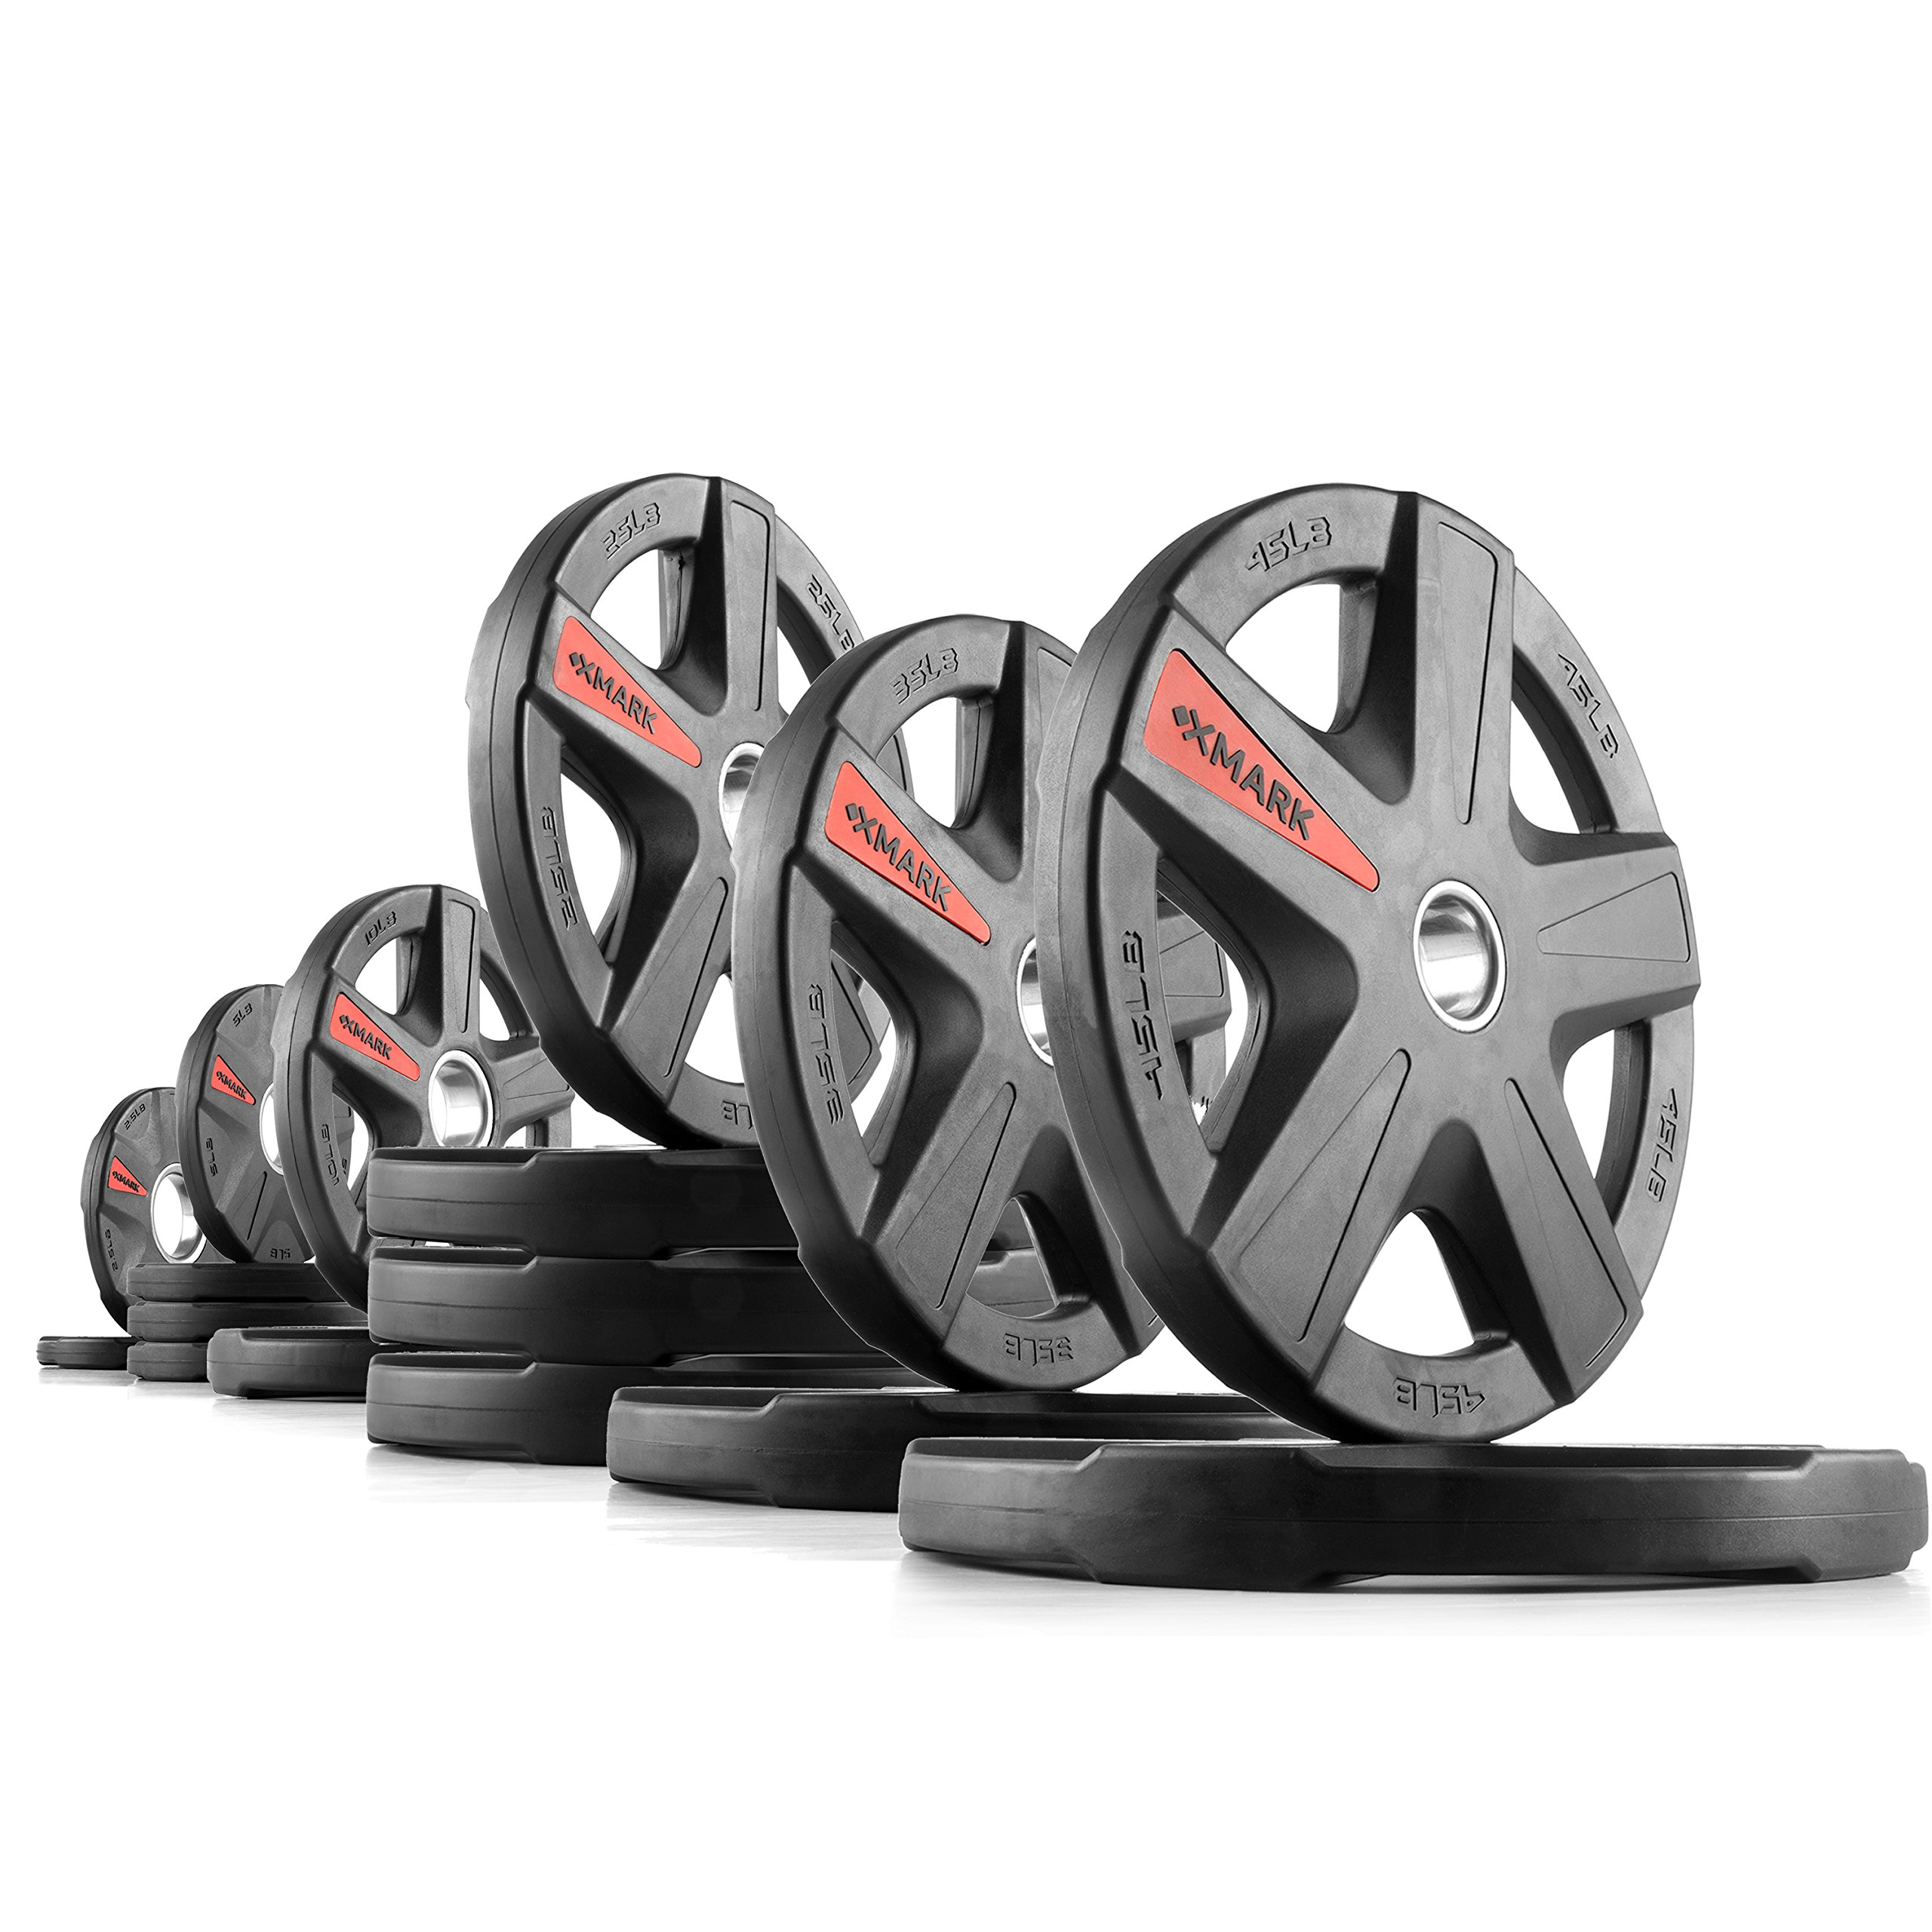 XMark Texas Star 305 lb Set Olympic Plates, Patented Design, One-Year Warranty, Olympic Weight Plates